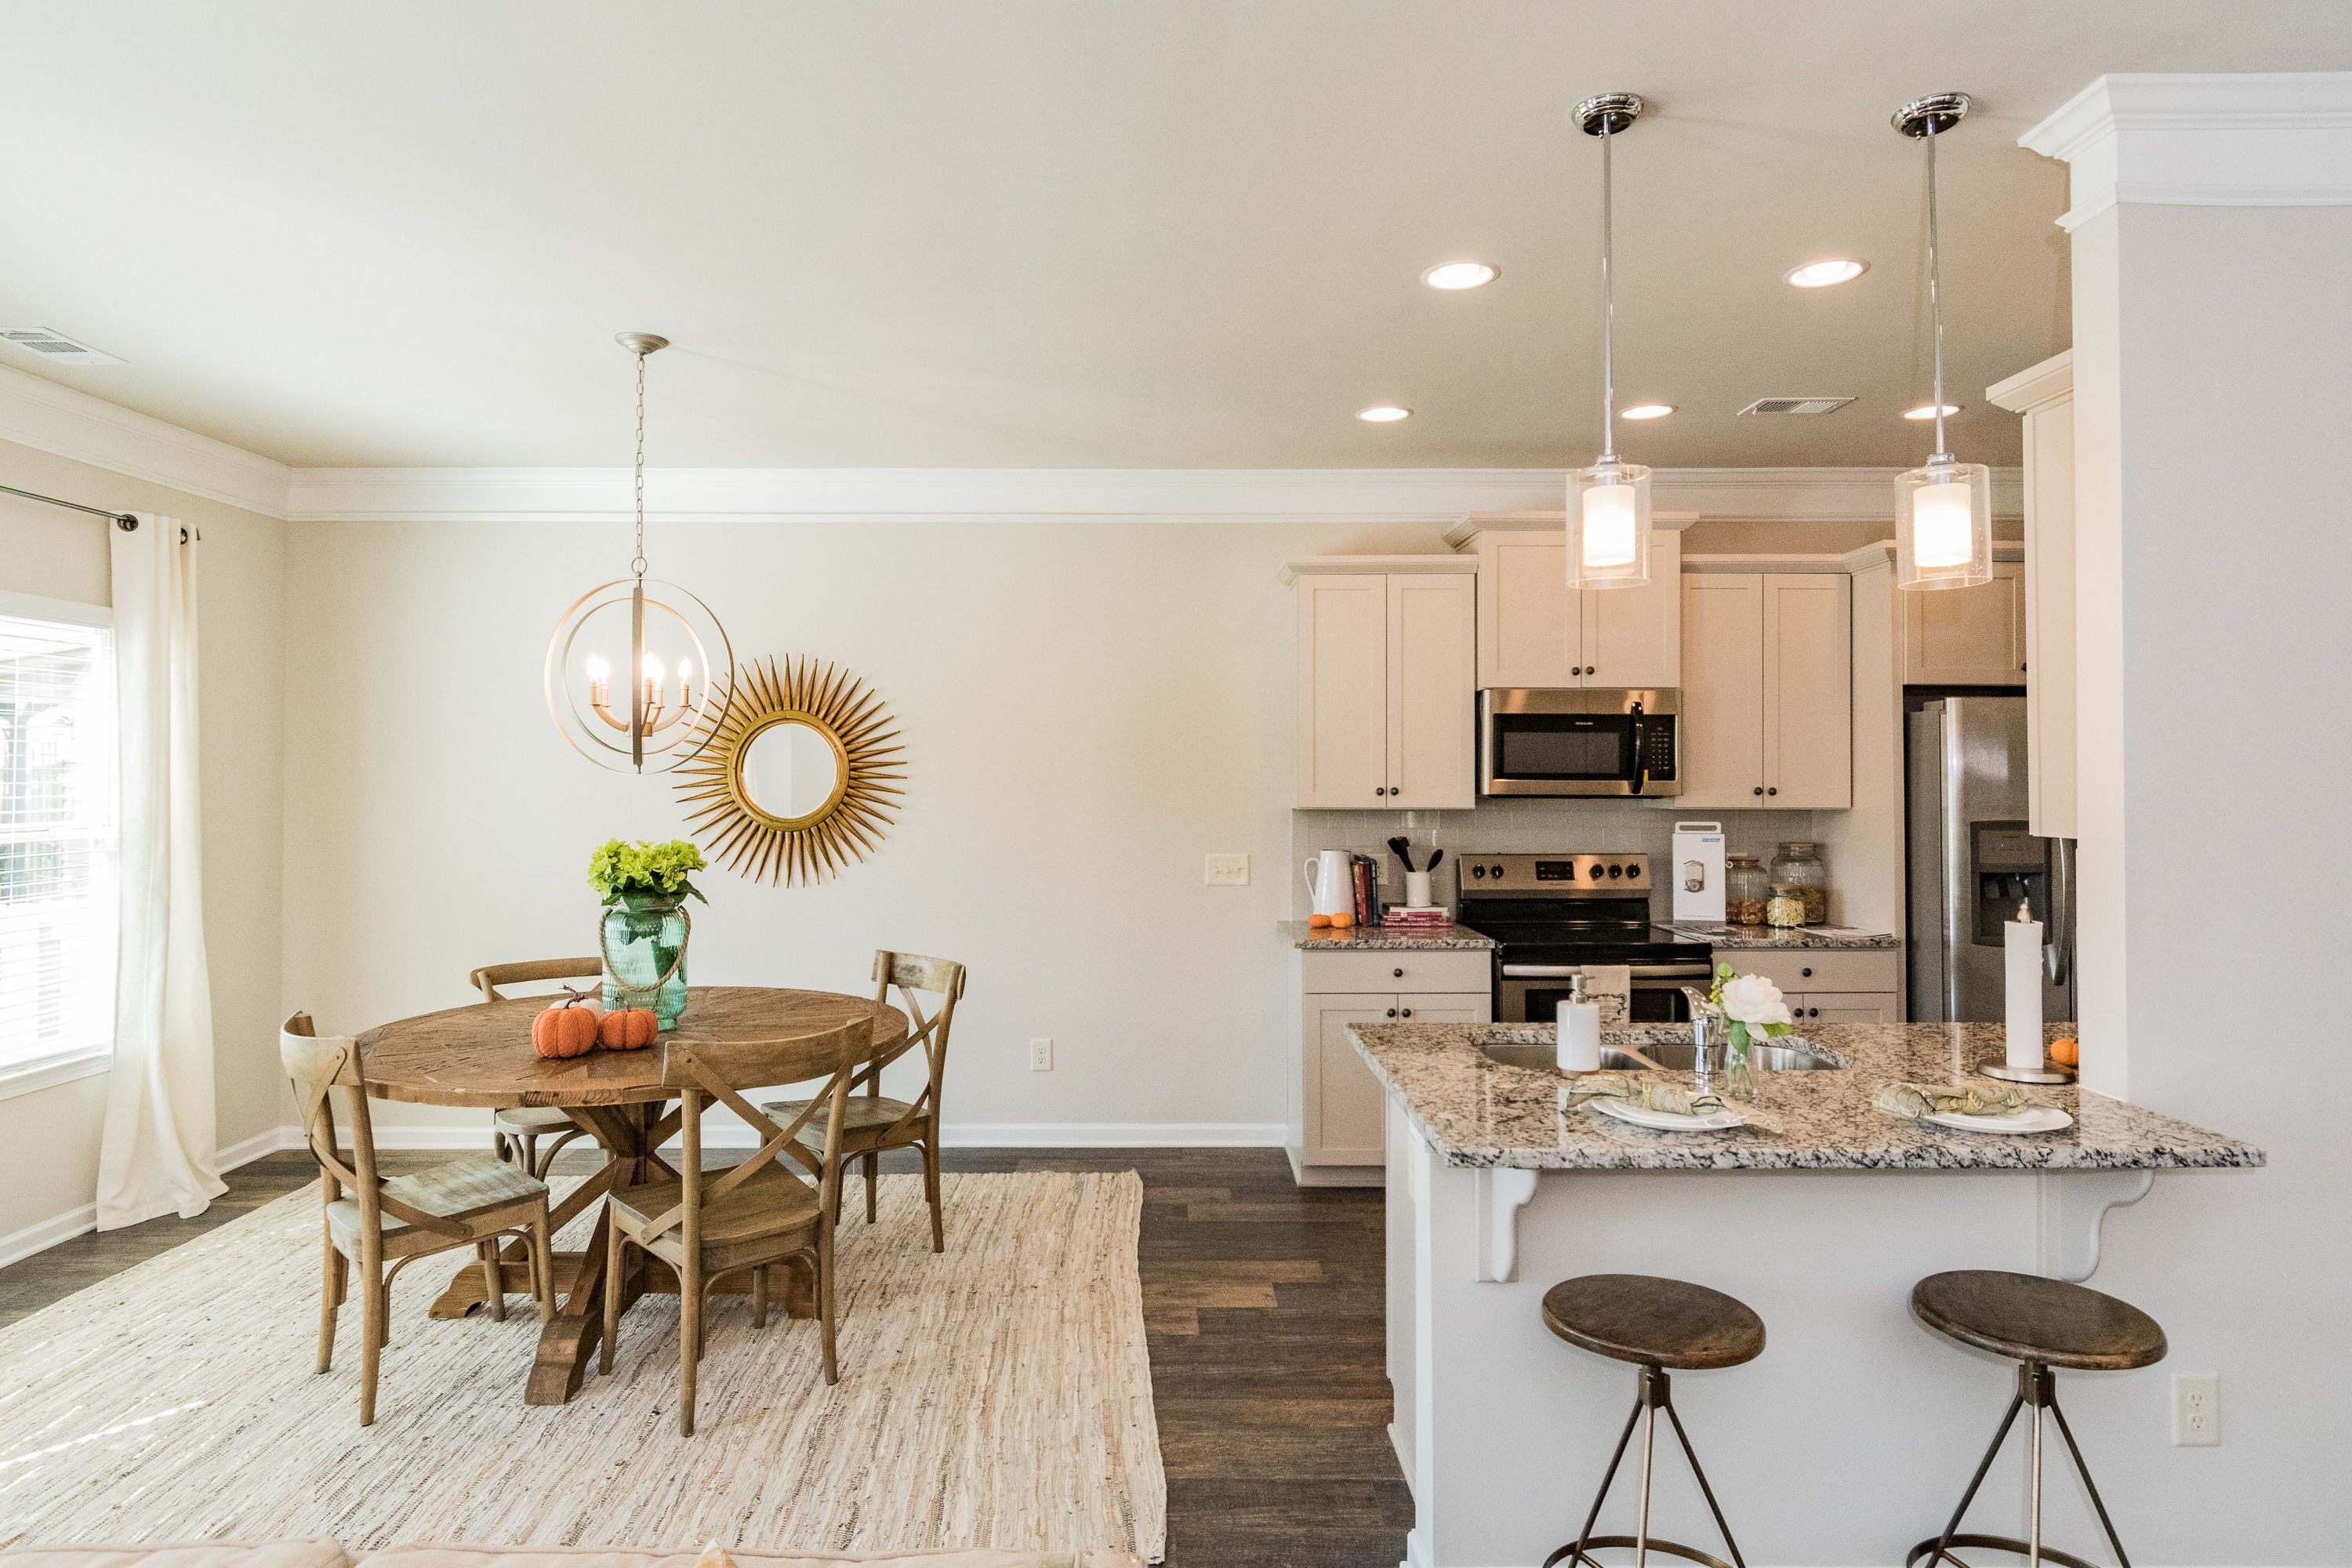 Kitchen featured in The Lathem By Smith Douglas Homes in Huntsville, AL